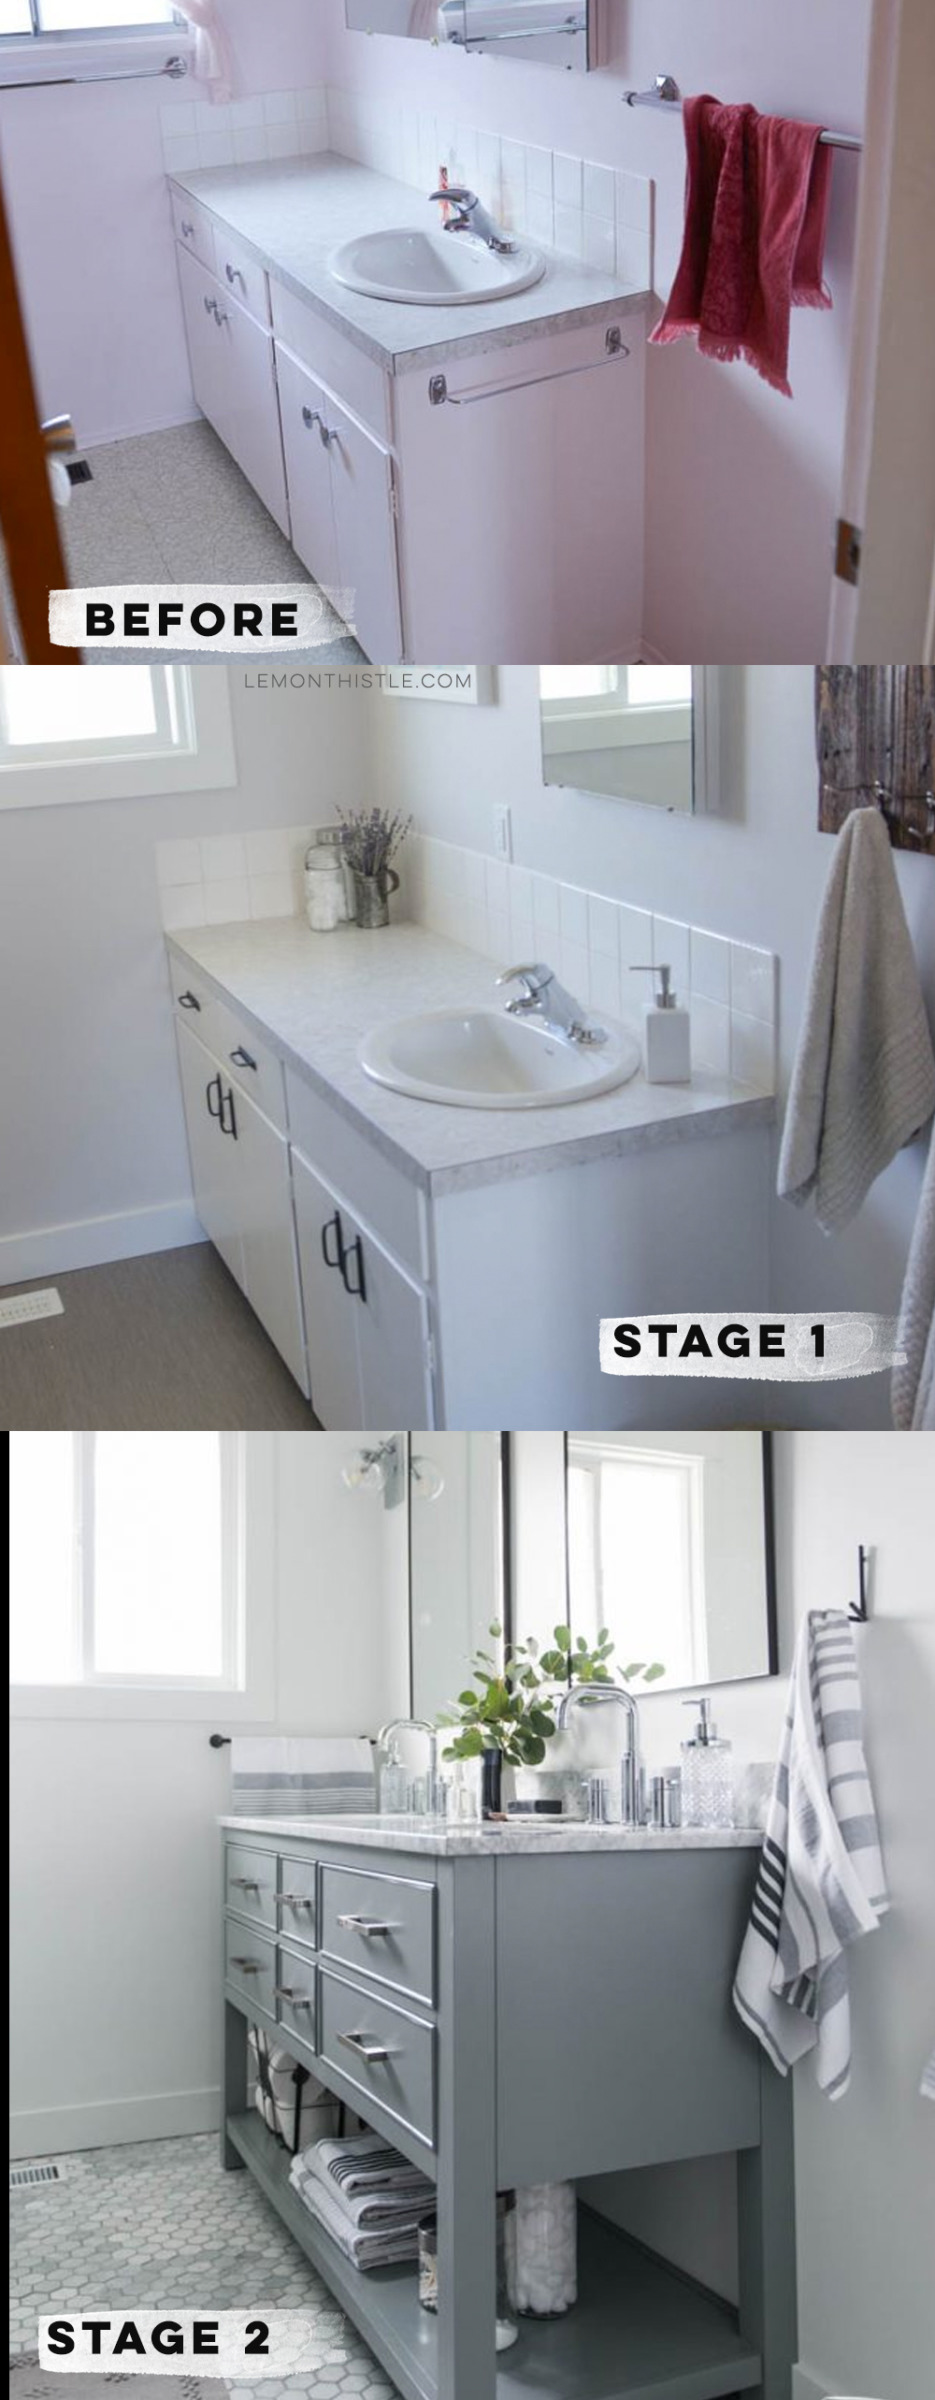 renovating a bathroom in stages